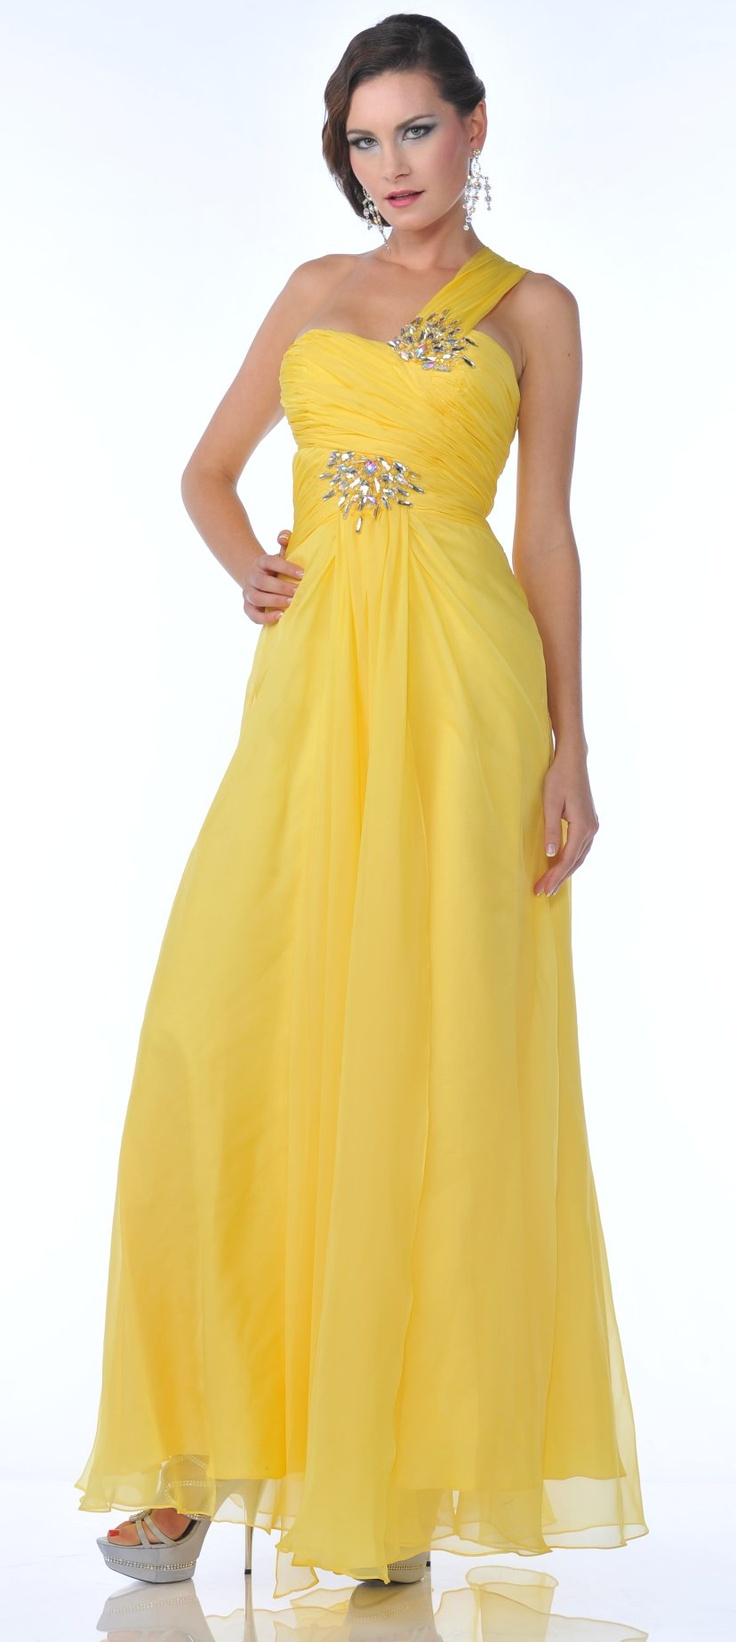 17 Best Images About Prom Dresses On Pinterest Panoply